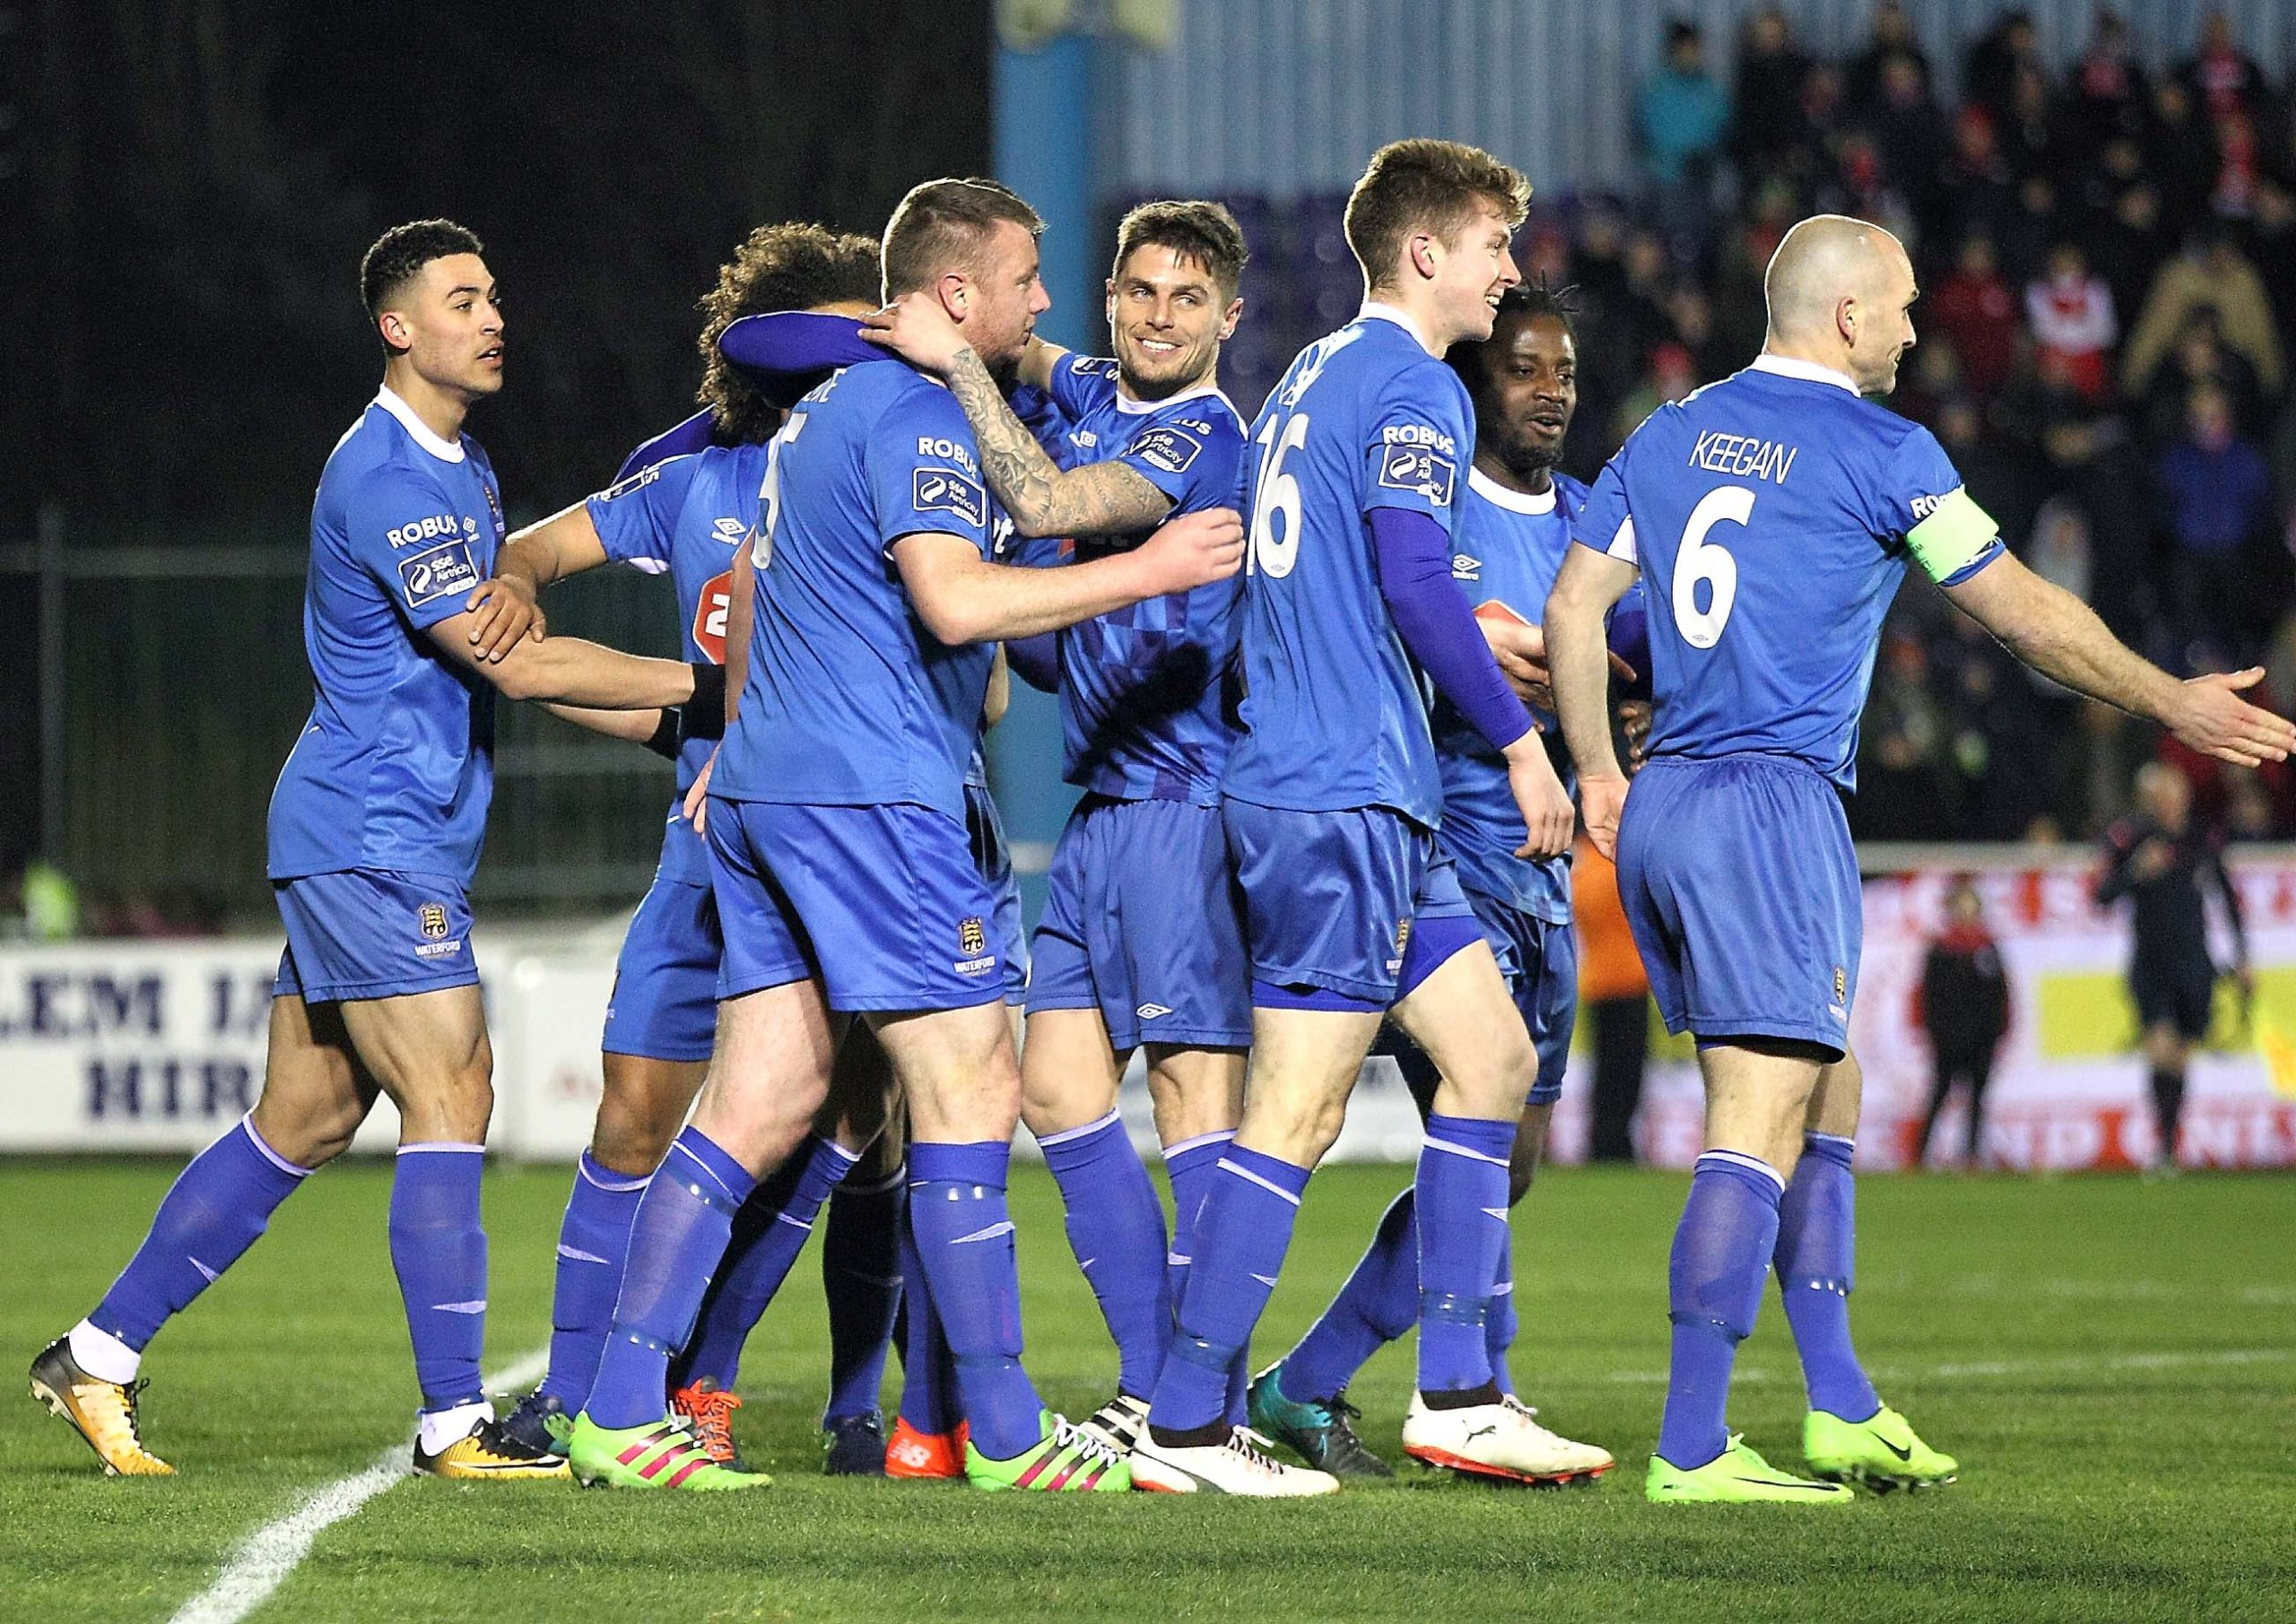 Waterford FC face Sligo Rovers this evening